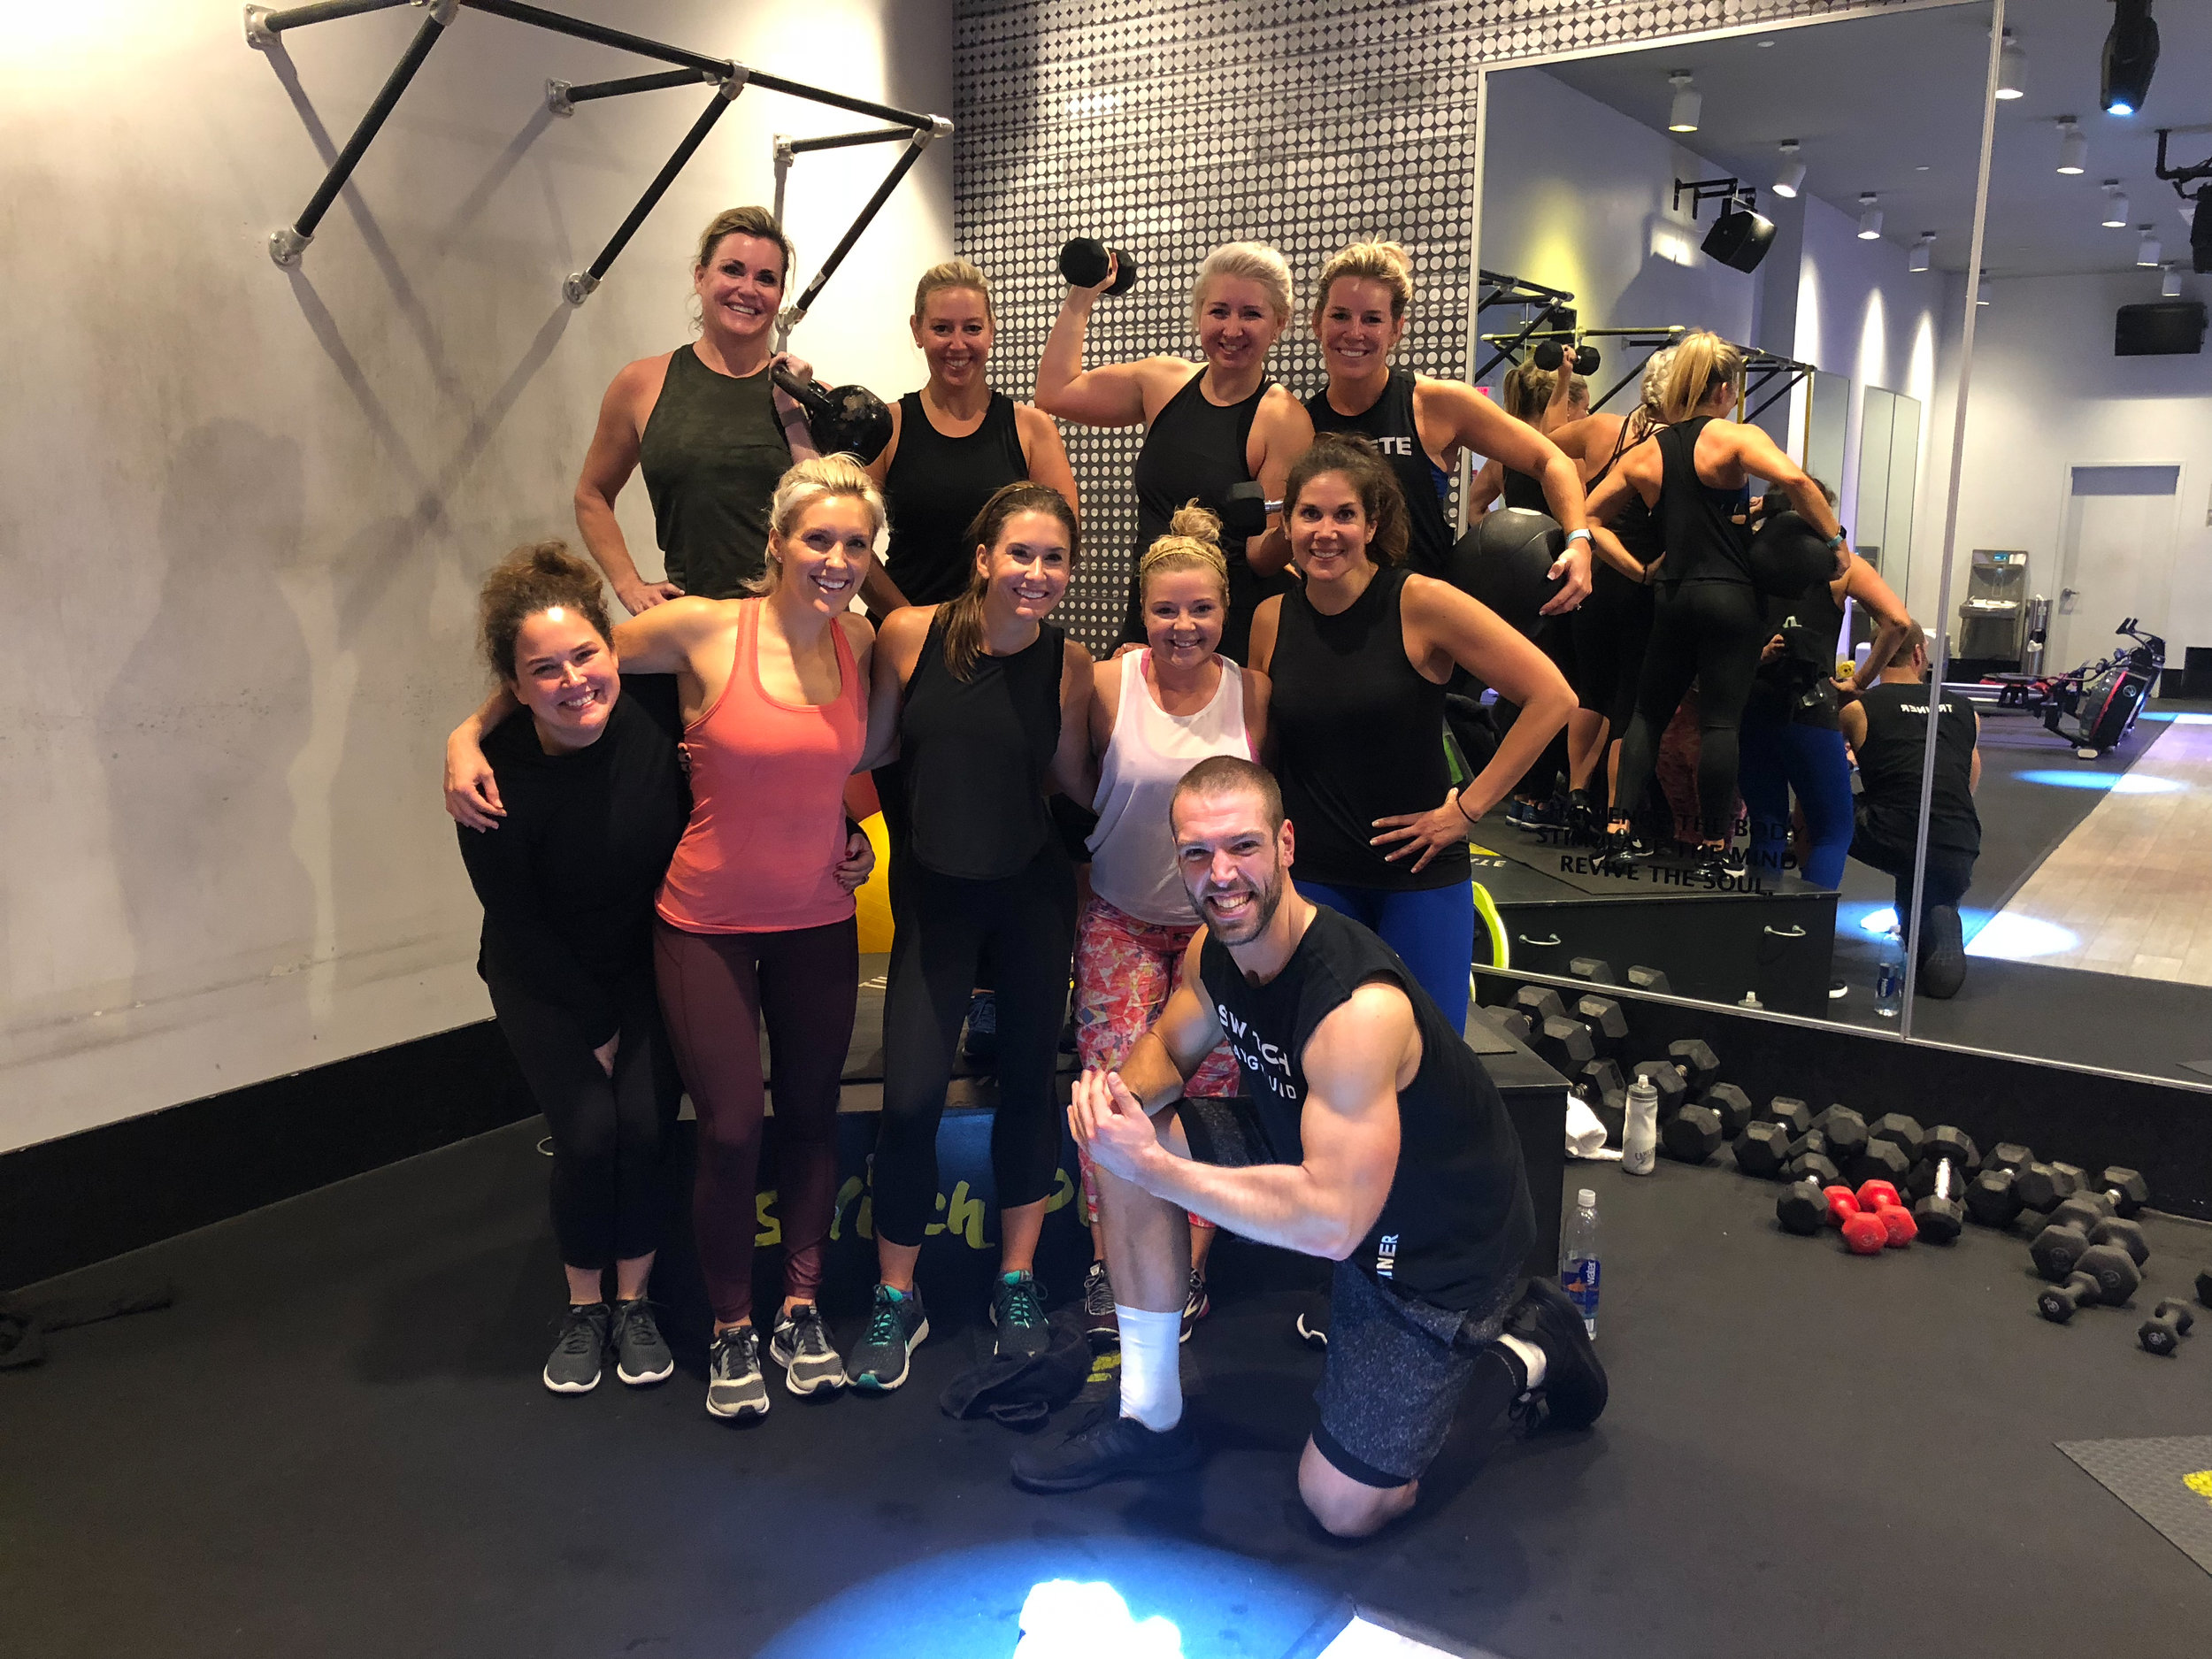 NYC Workout Crawl - All in with Angie